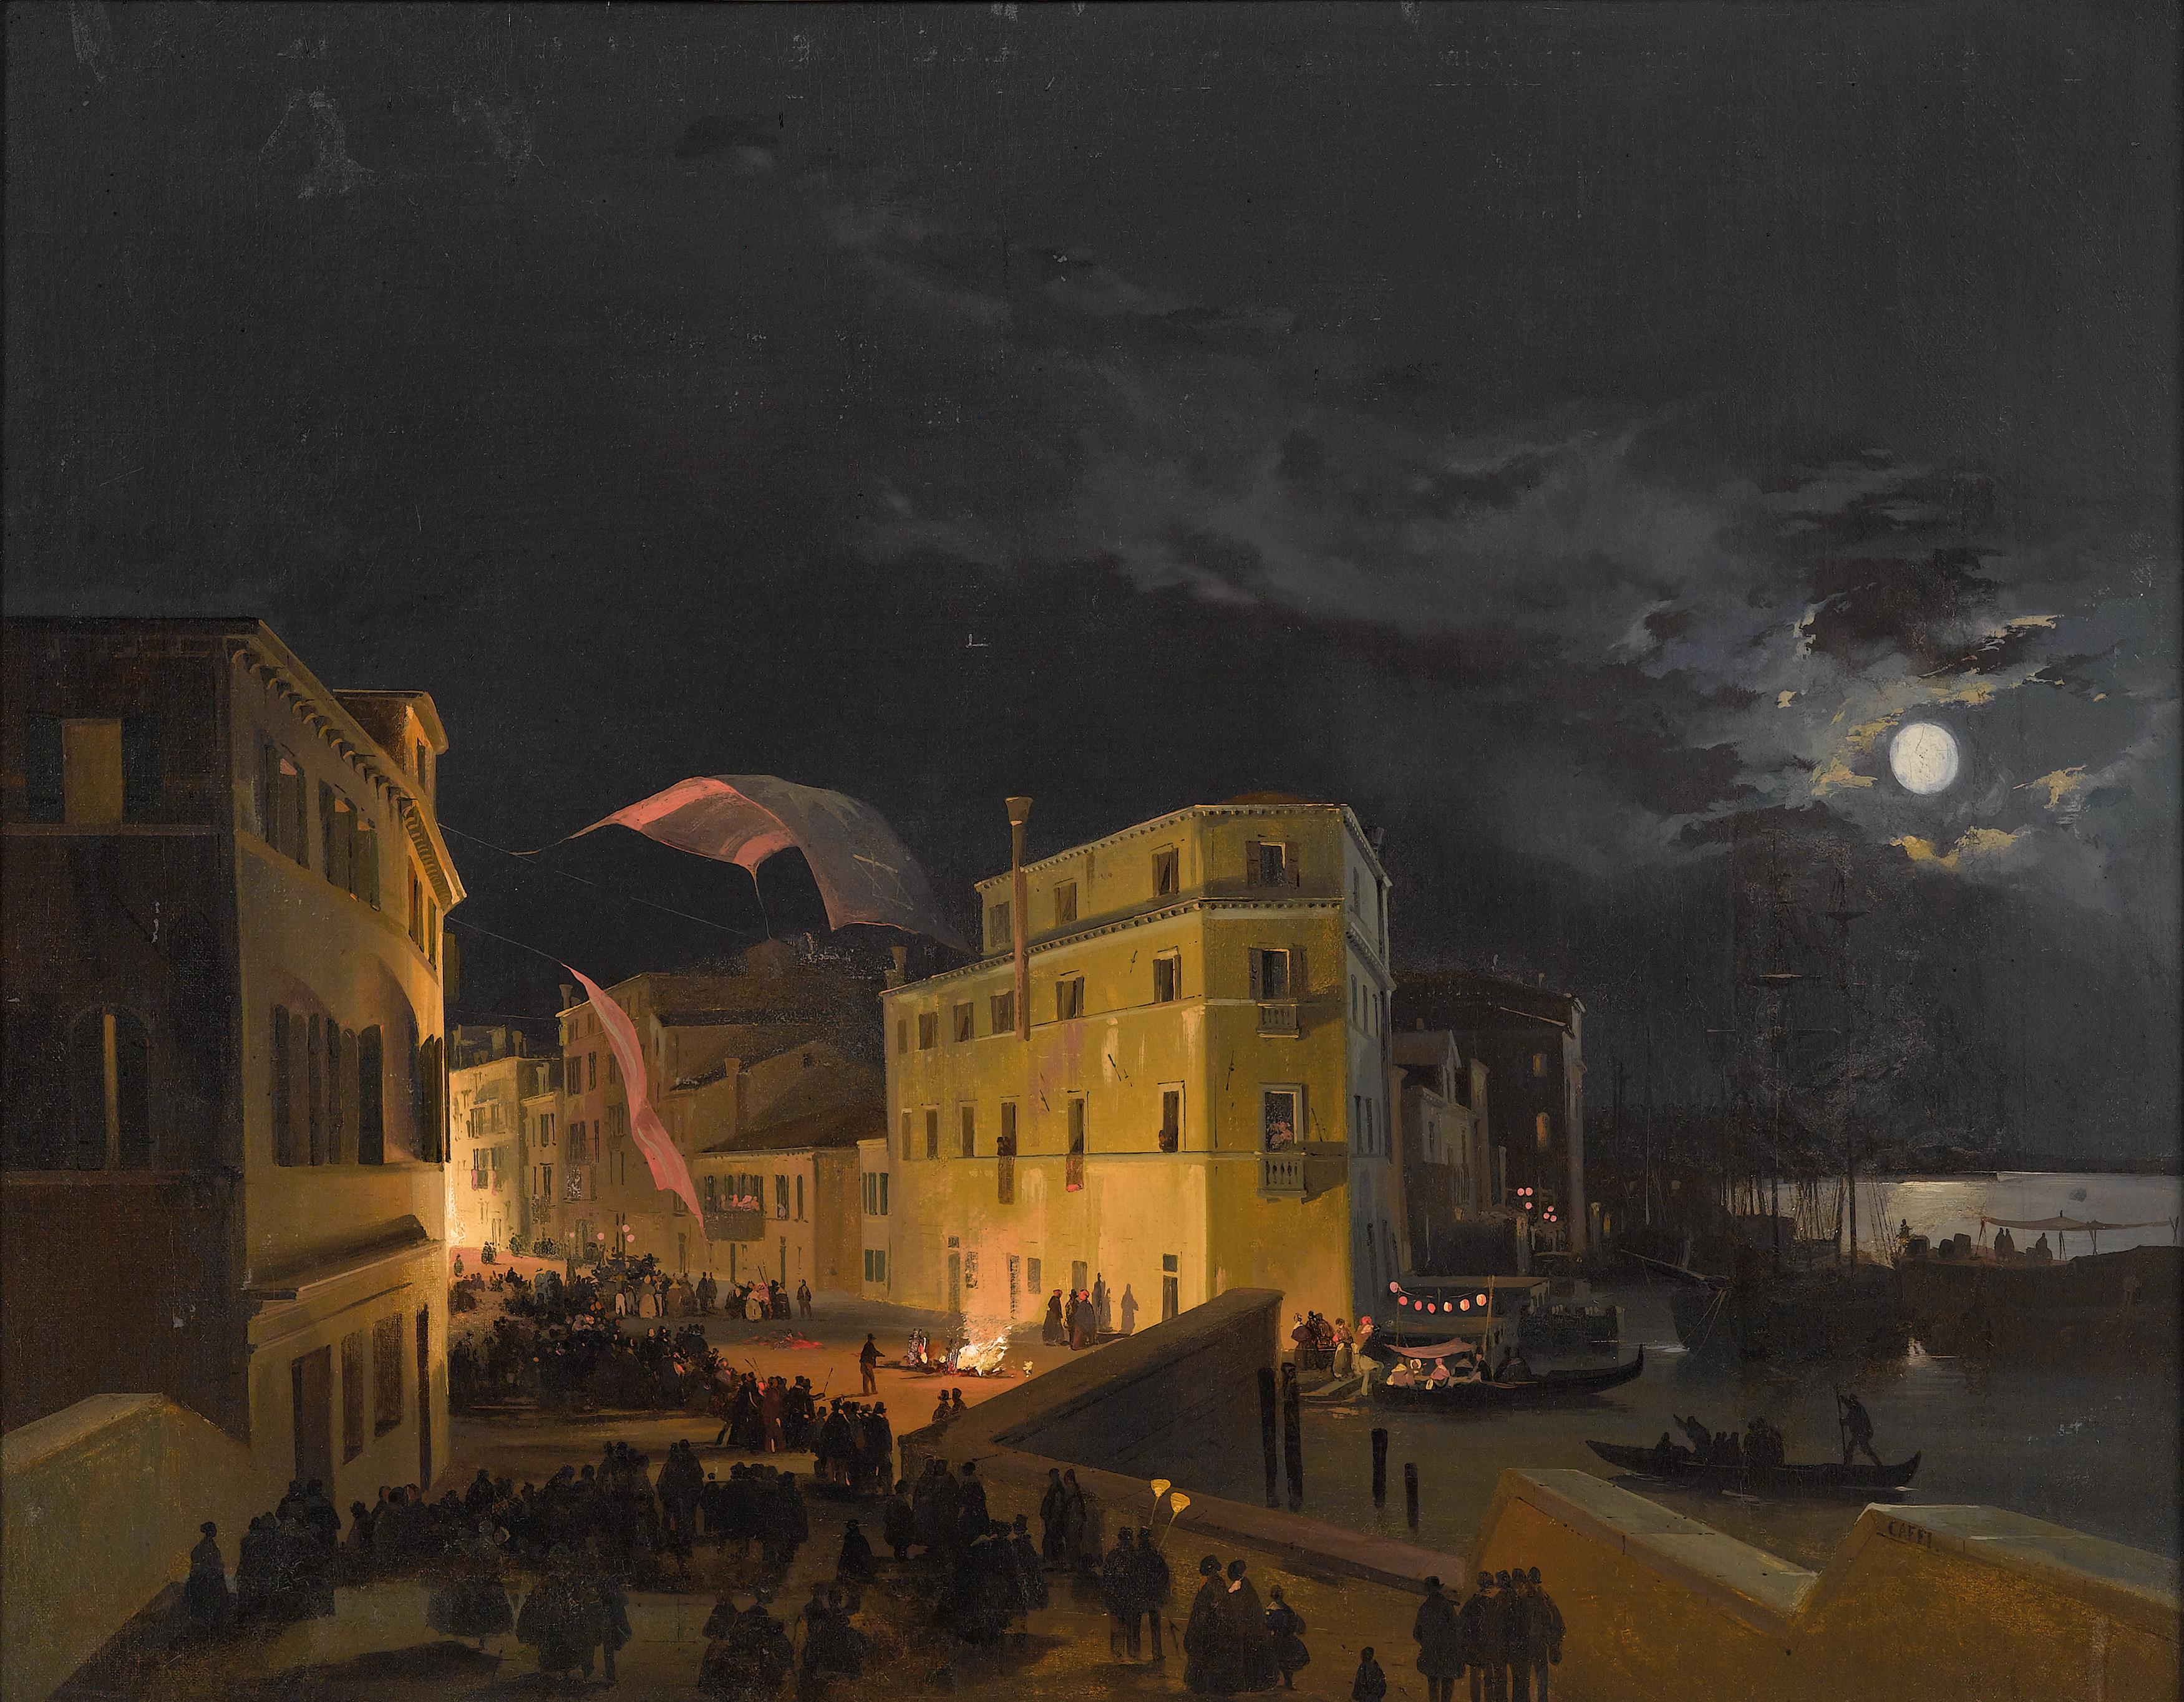 Ippolito Caffi, Venice, Nocturnal feast in Via Eugenia, 52 x 66 cm, Estimate € 40,000 - 60,000, 19th Century Paintings auction, 21st April 2016; EUR 161.600 ,- /  USD 183.500 ,-